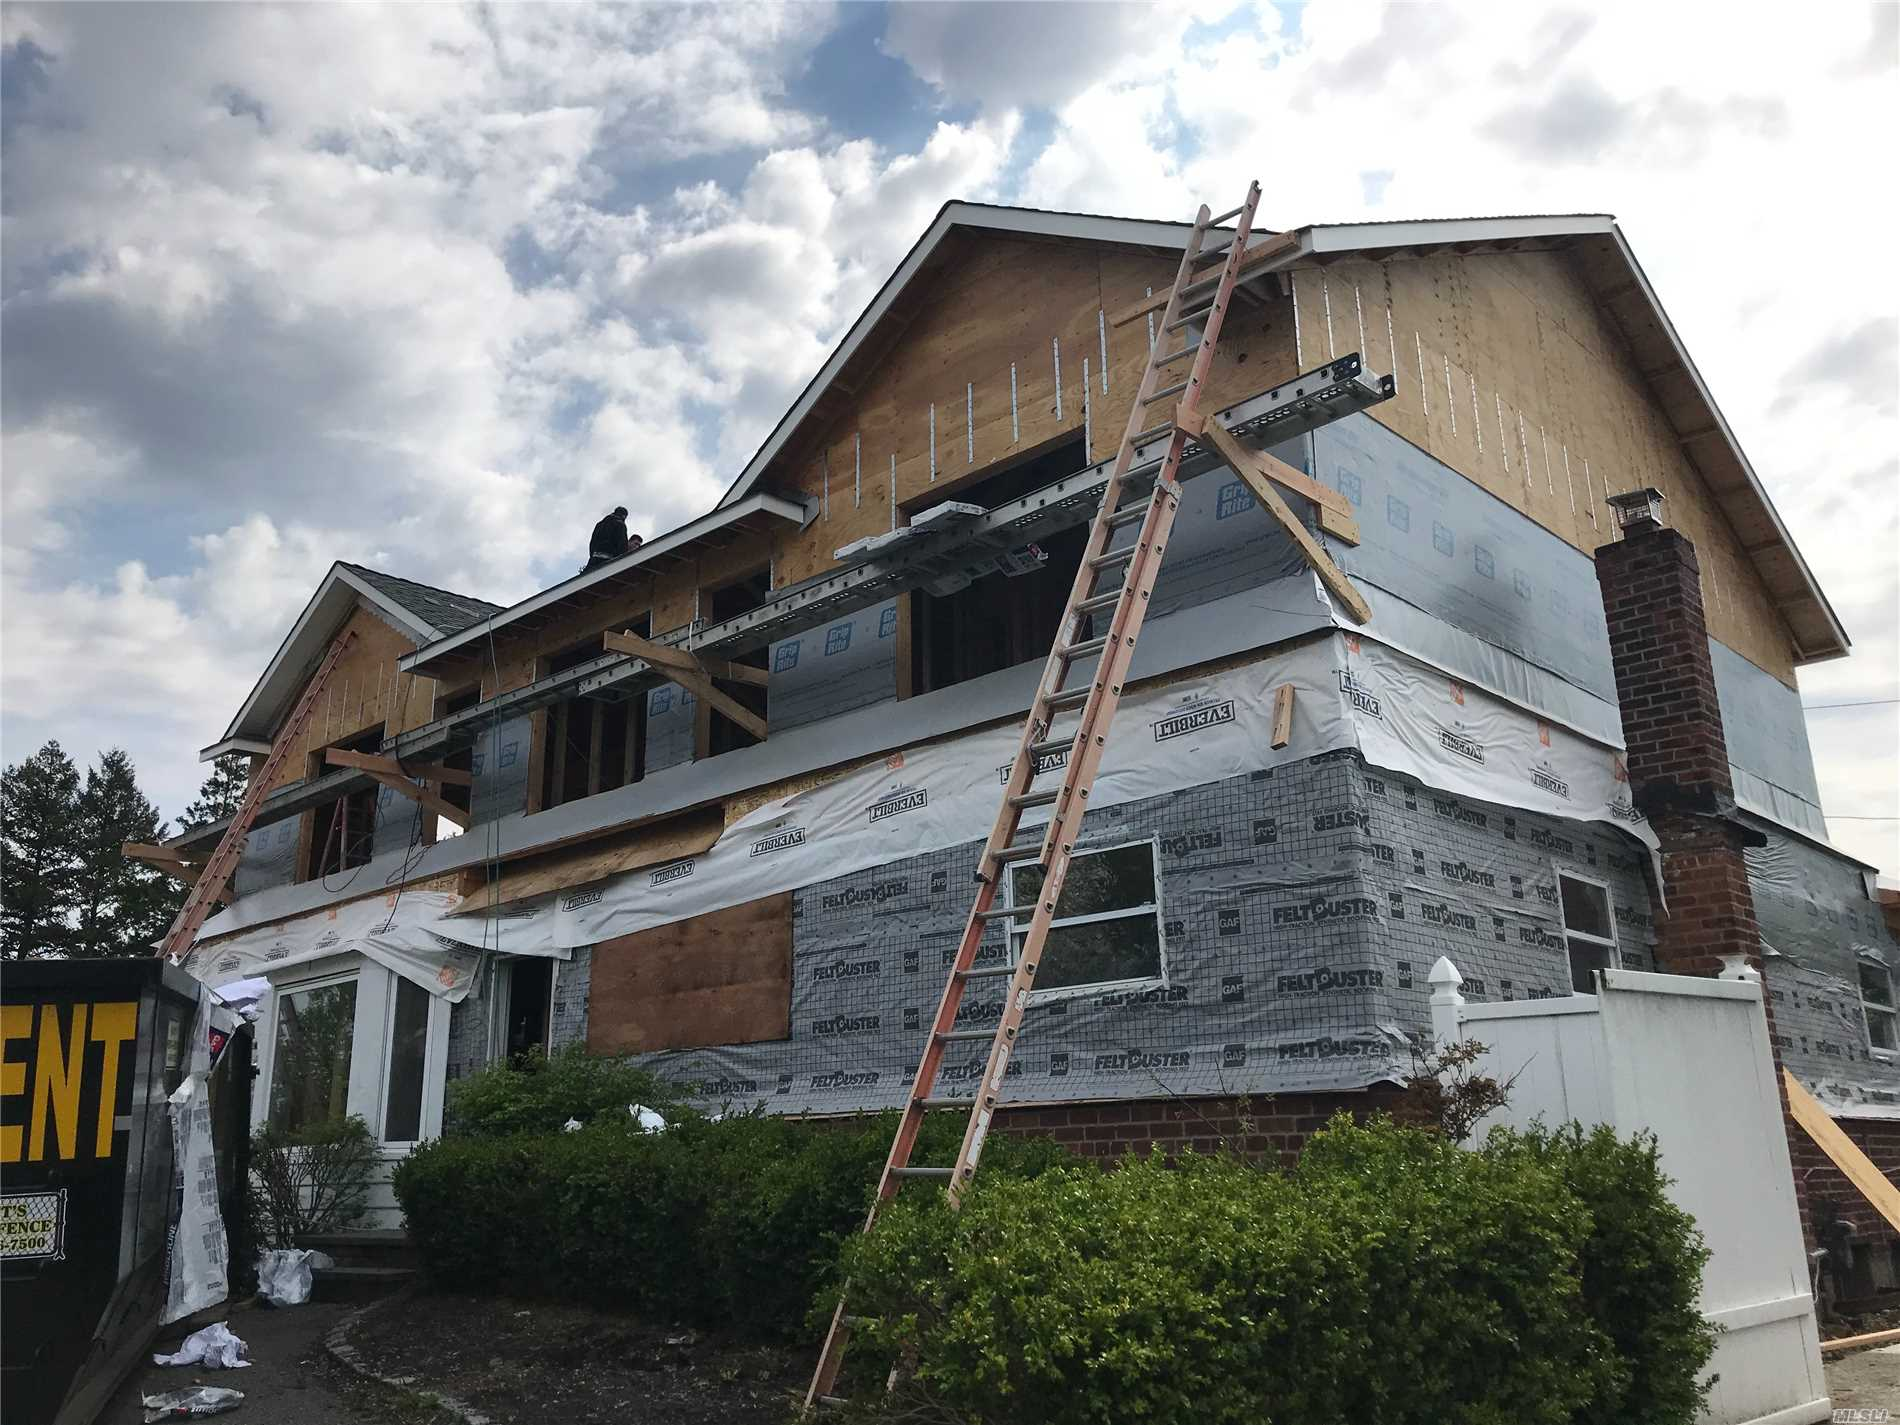 Pre-Construction Sale, East Birchwood (Syosset Schools), To Be Built By Prosper Development Come Be Part Of The Process, 5/6 Bed, 5.5 Bath Colonial, Completed Fall Of 2018. 3600Sq Ft. Finishings And Colors To Suite. Option For Pool. Taxes Of $17, 481 Are Current As Of 2018 And Do Not Reflect Post Construction Tax Assessment. Robbins Lane Elementary. Open Floor Plan W/Great Room & Center Island Kitchen, 2 Bedrooms On First Floor, Fireplace In Family Room. Option For Garage